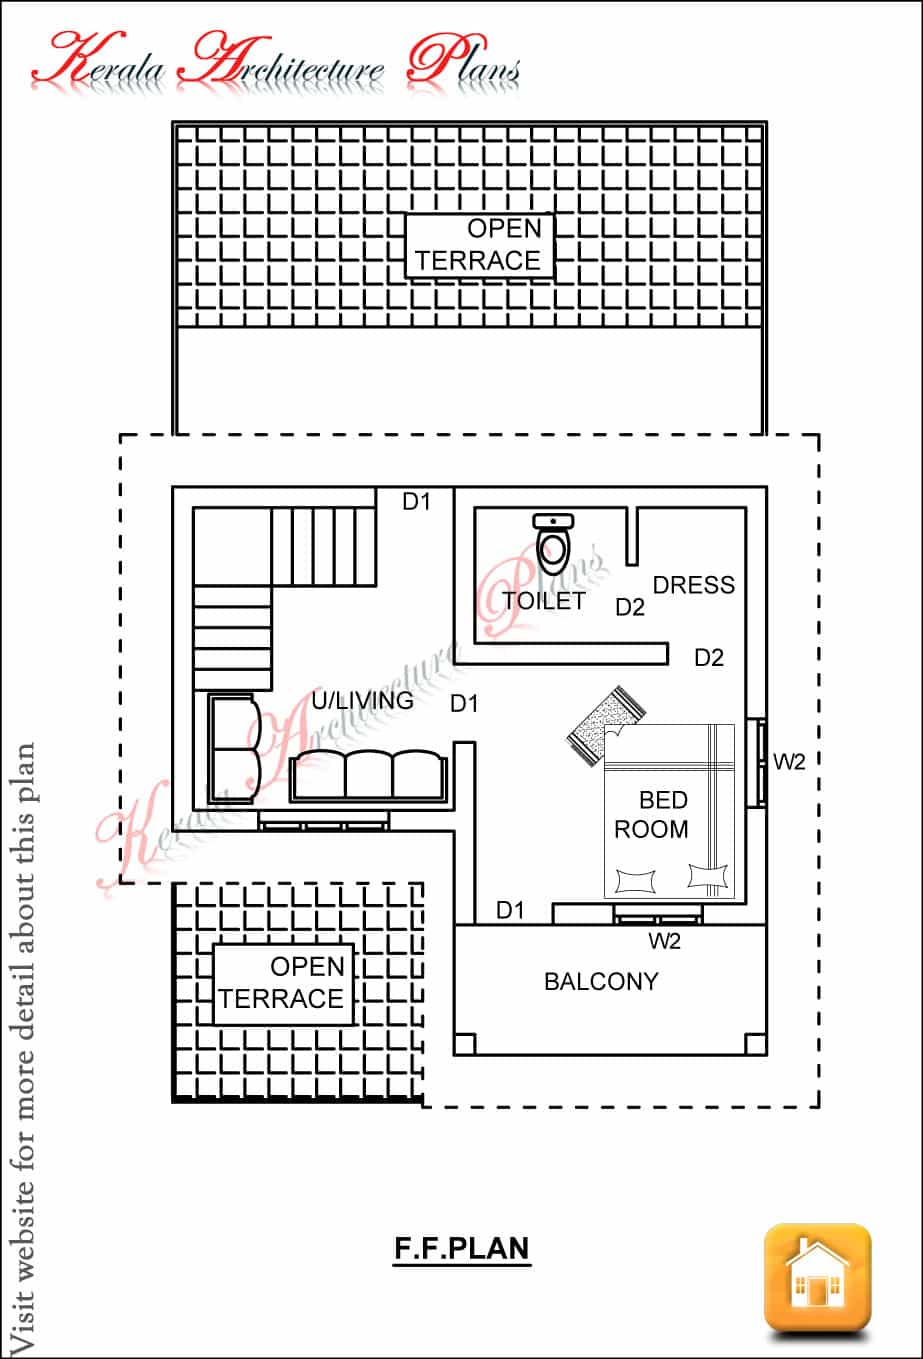 2 Bedroom House Plans In Kerala Model - rts - ^